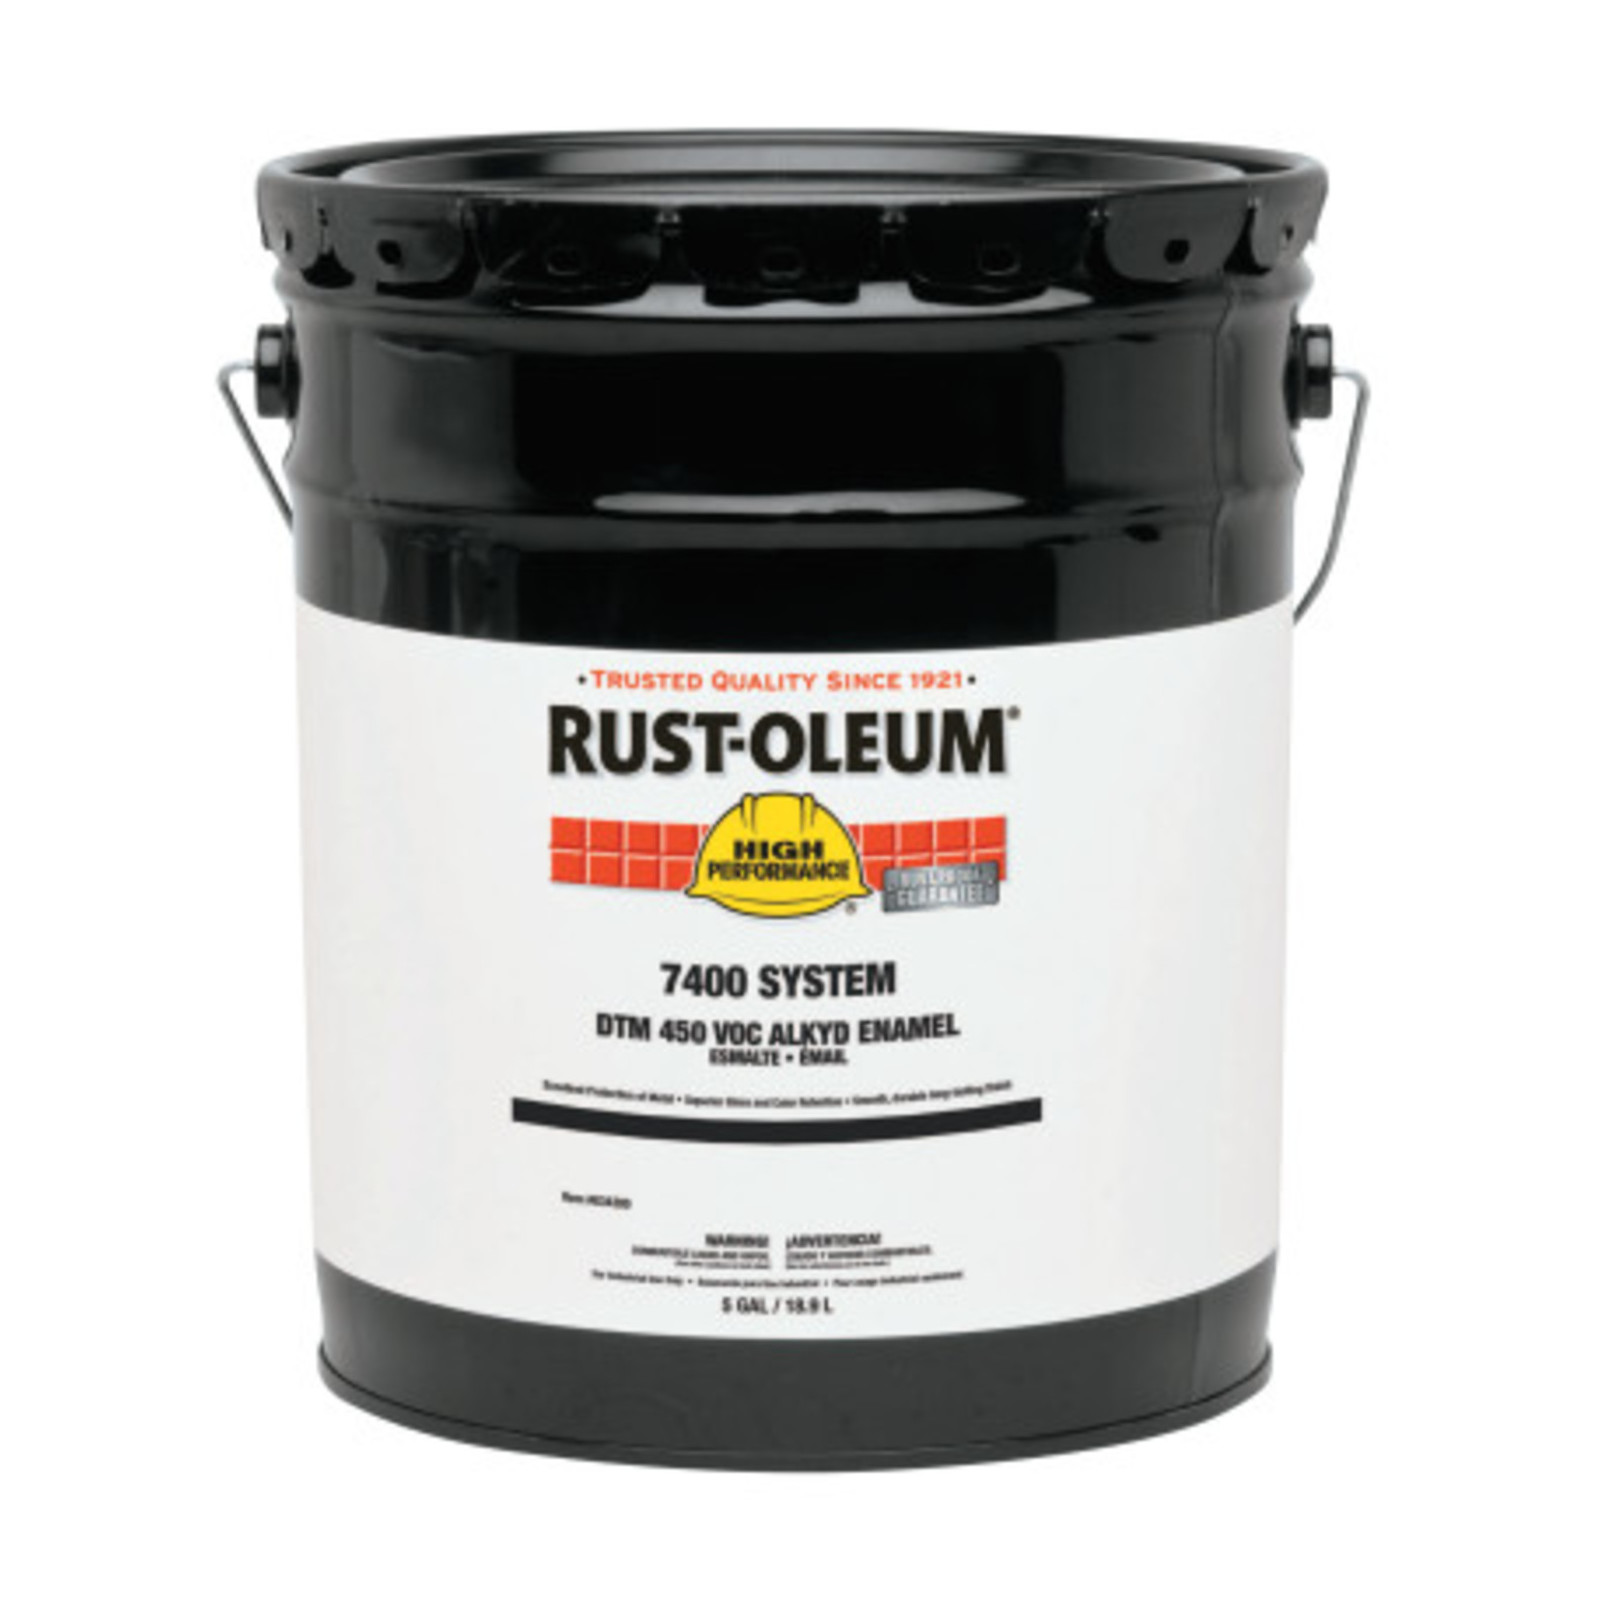 High Performance 7400 System DTM Alkyd Enamels, 1 Gallon Can, Flat White